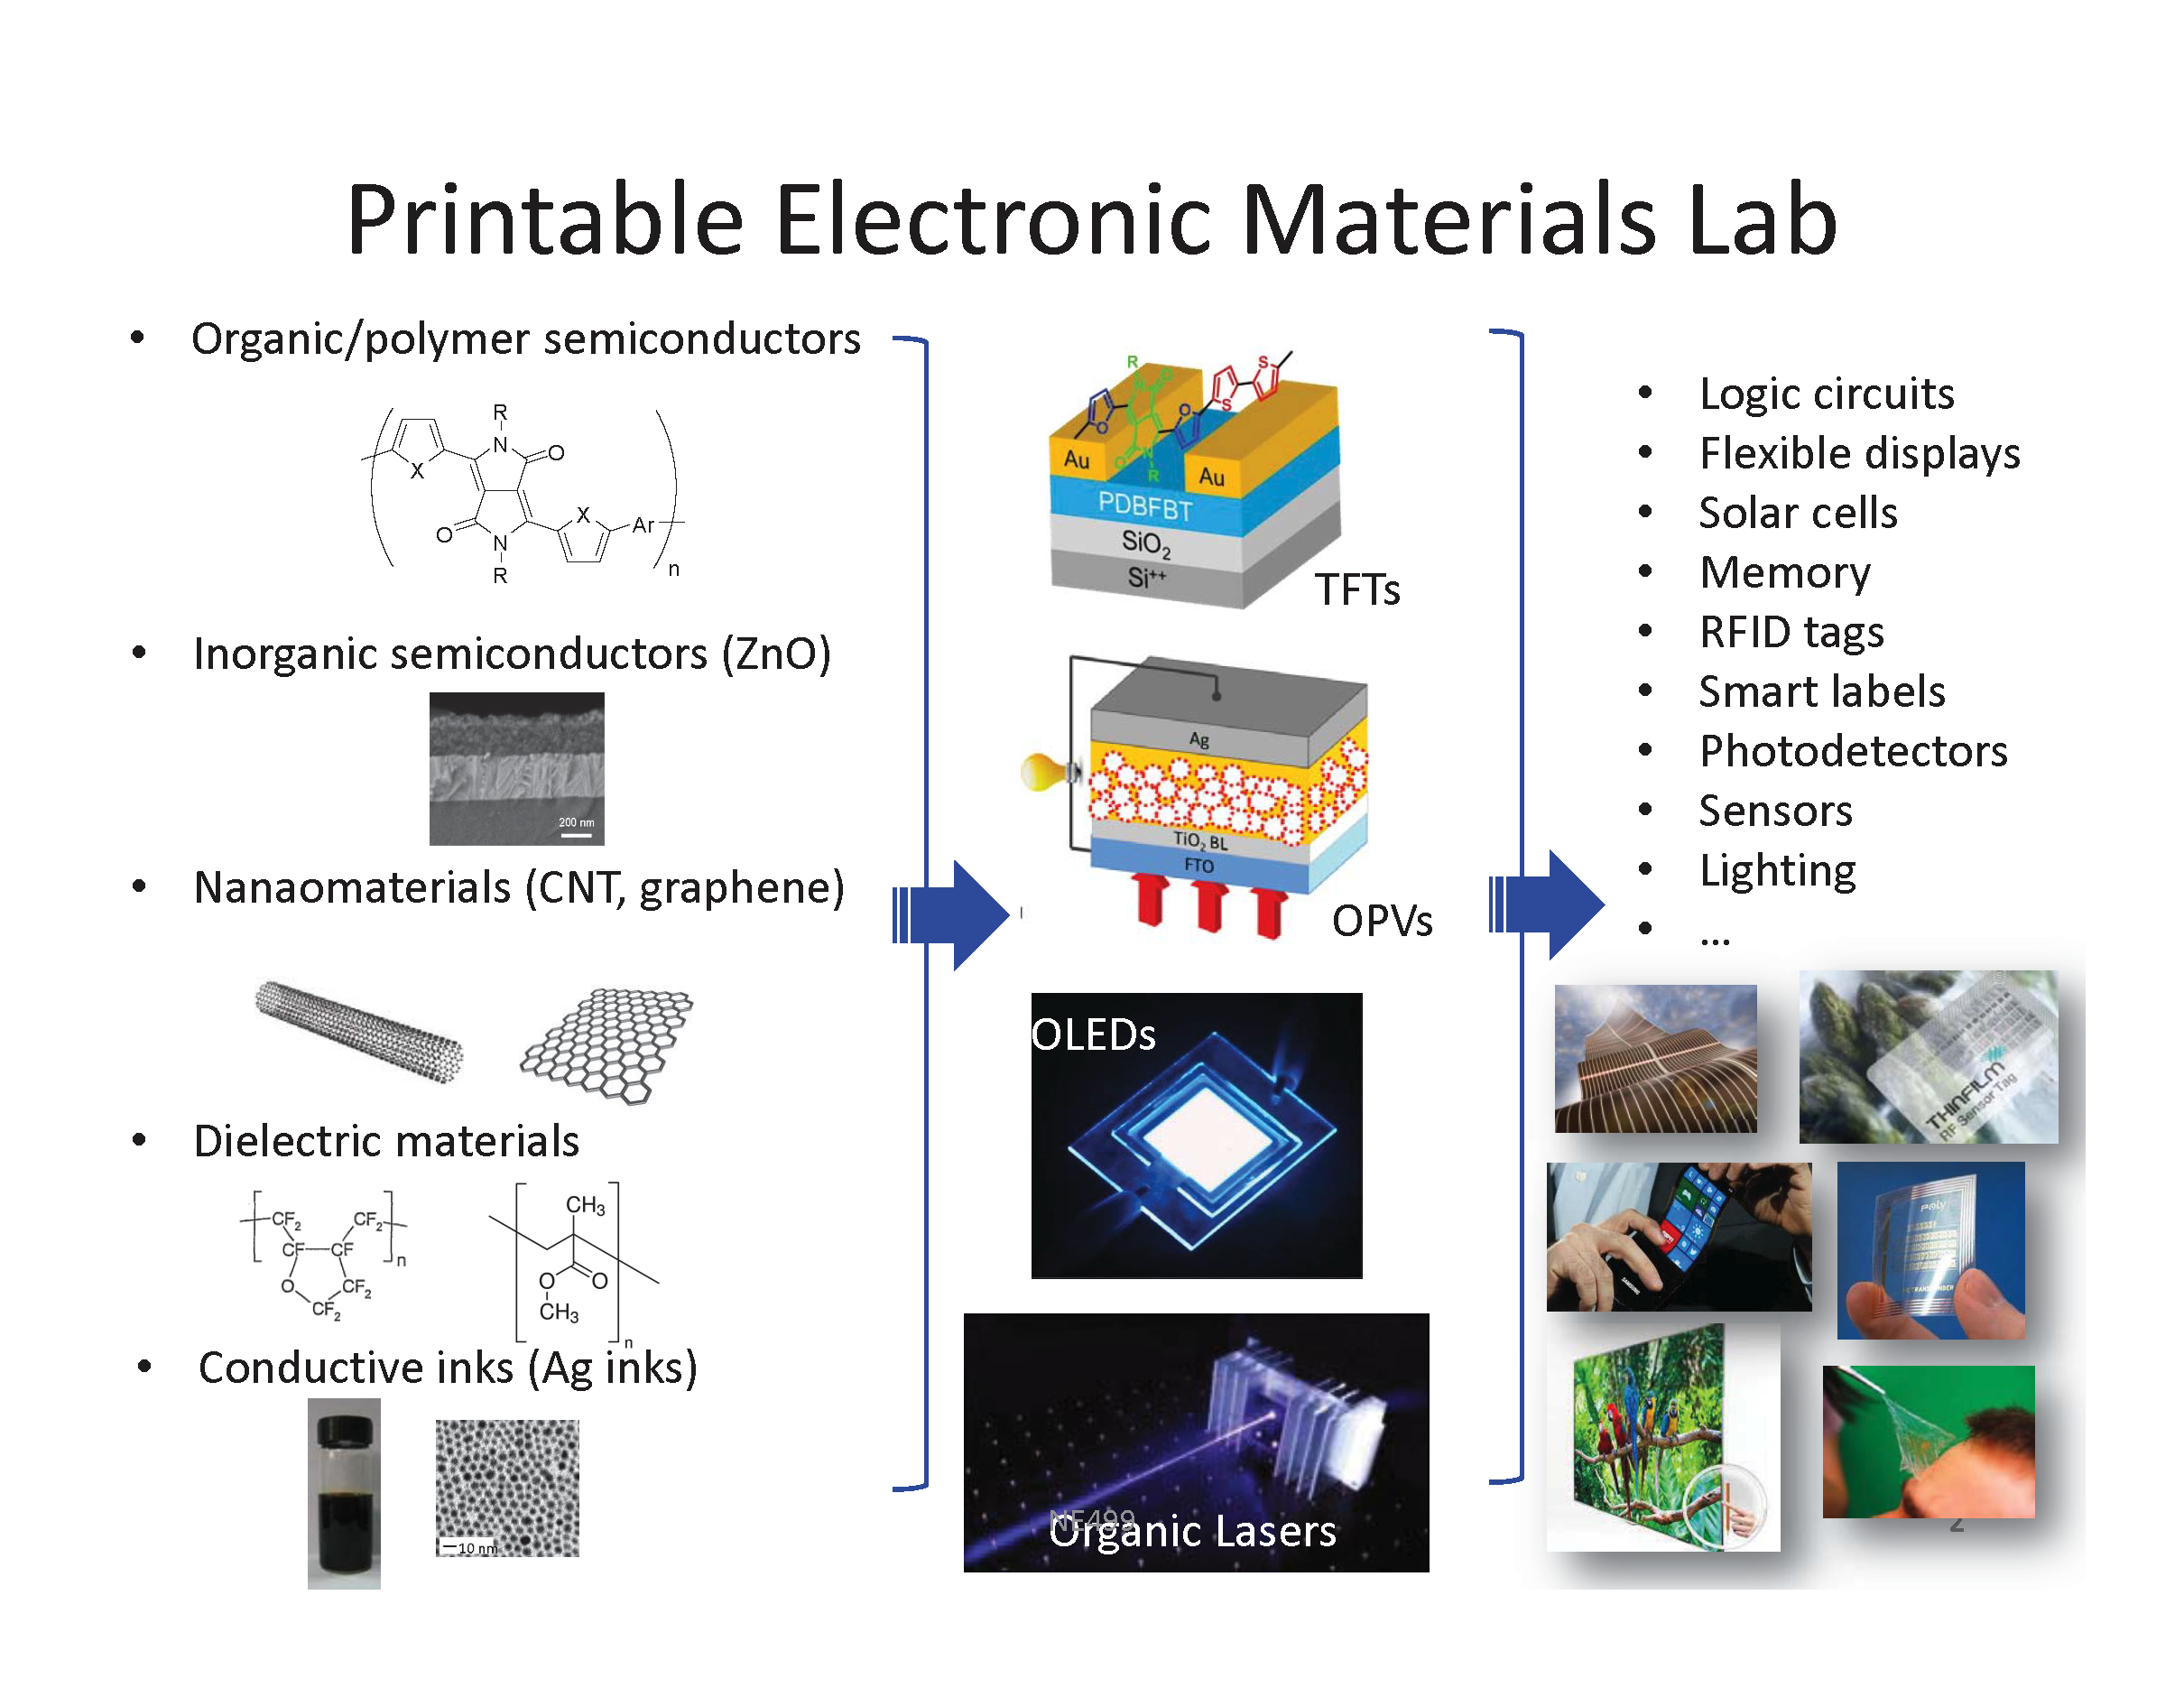 printed-electronic-materials-lab